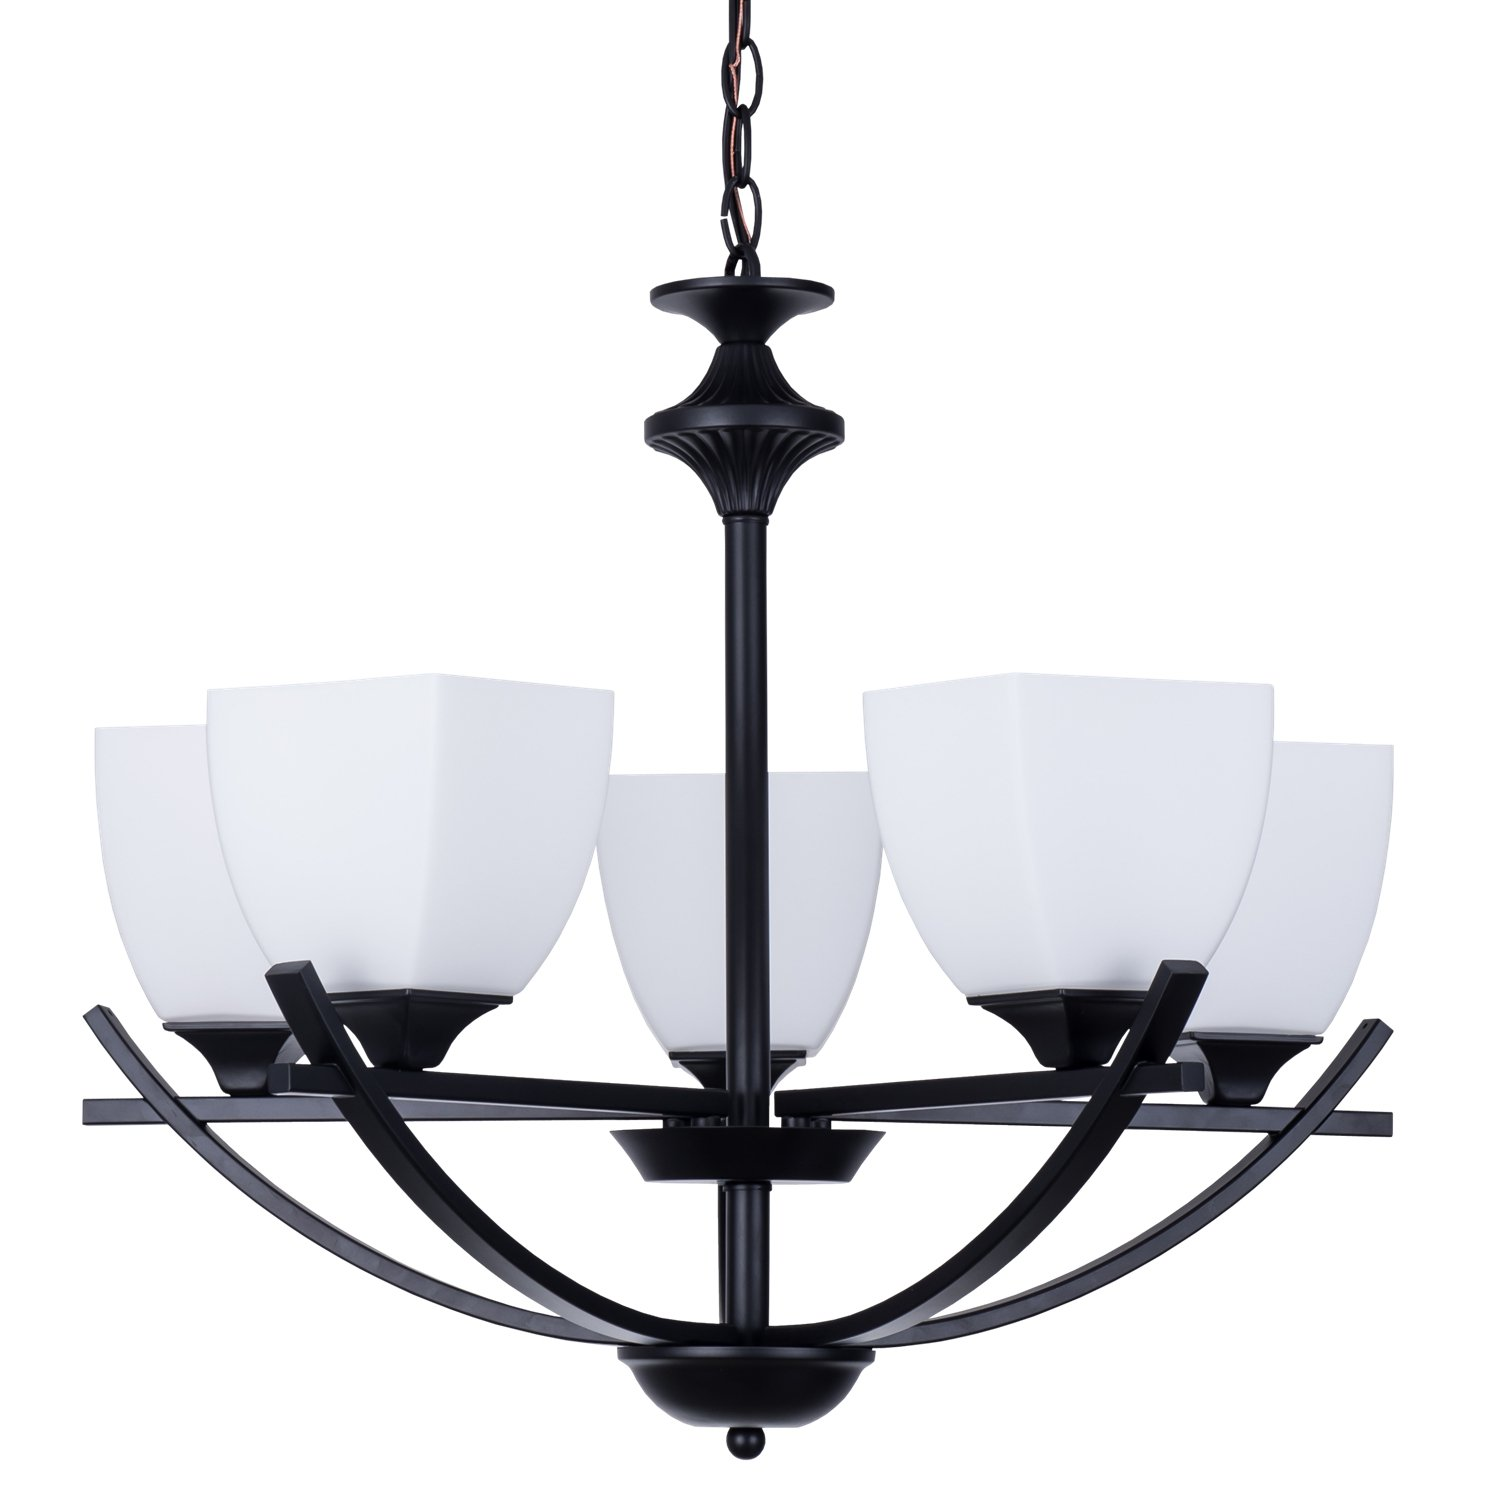 """Alice House 24"""" Chandeliers for Dining Room, Matte Black Color, 5 Light with 48"""" Chain Kitchen Light Fixtures, Modern Farmhouse Lighting AL12077-H5"""